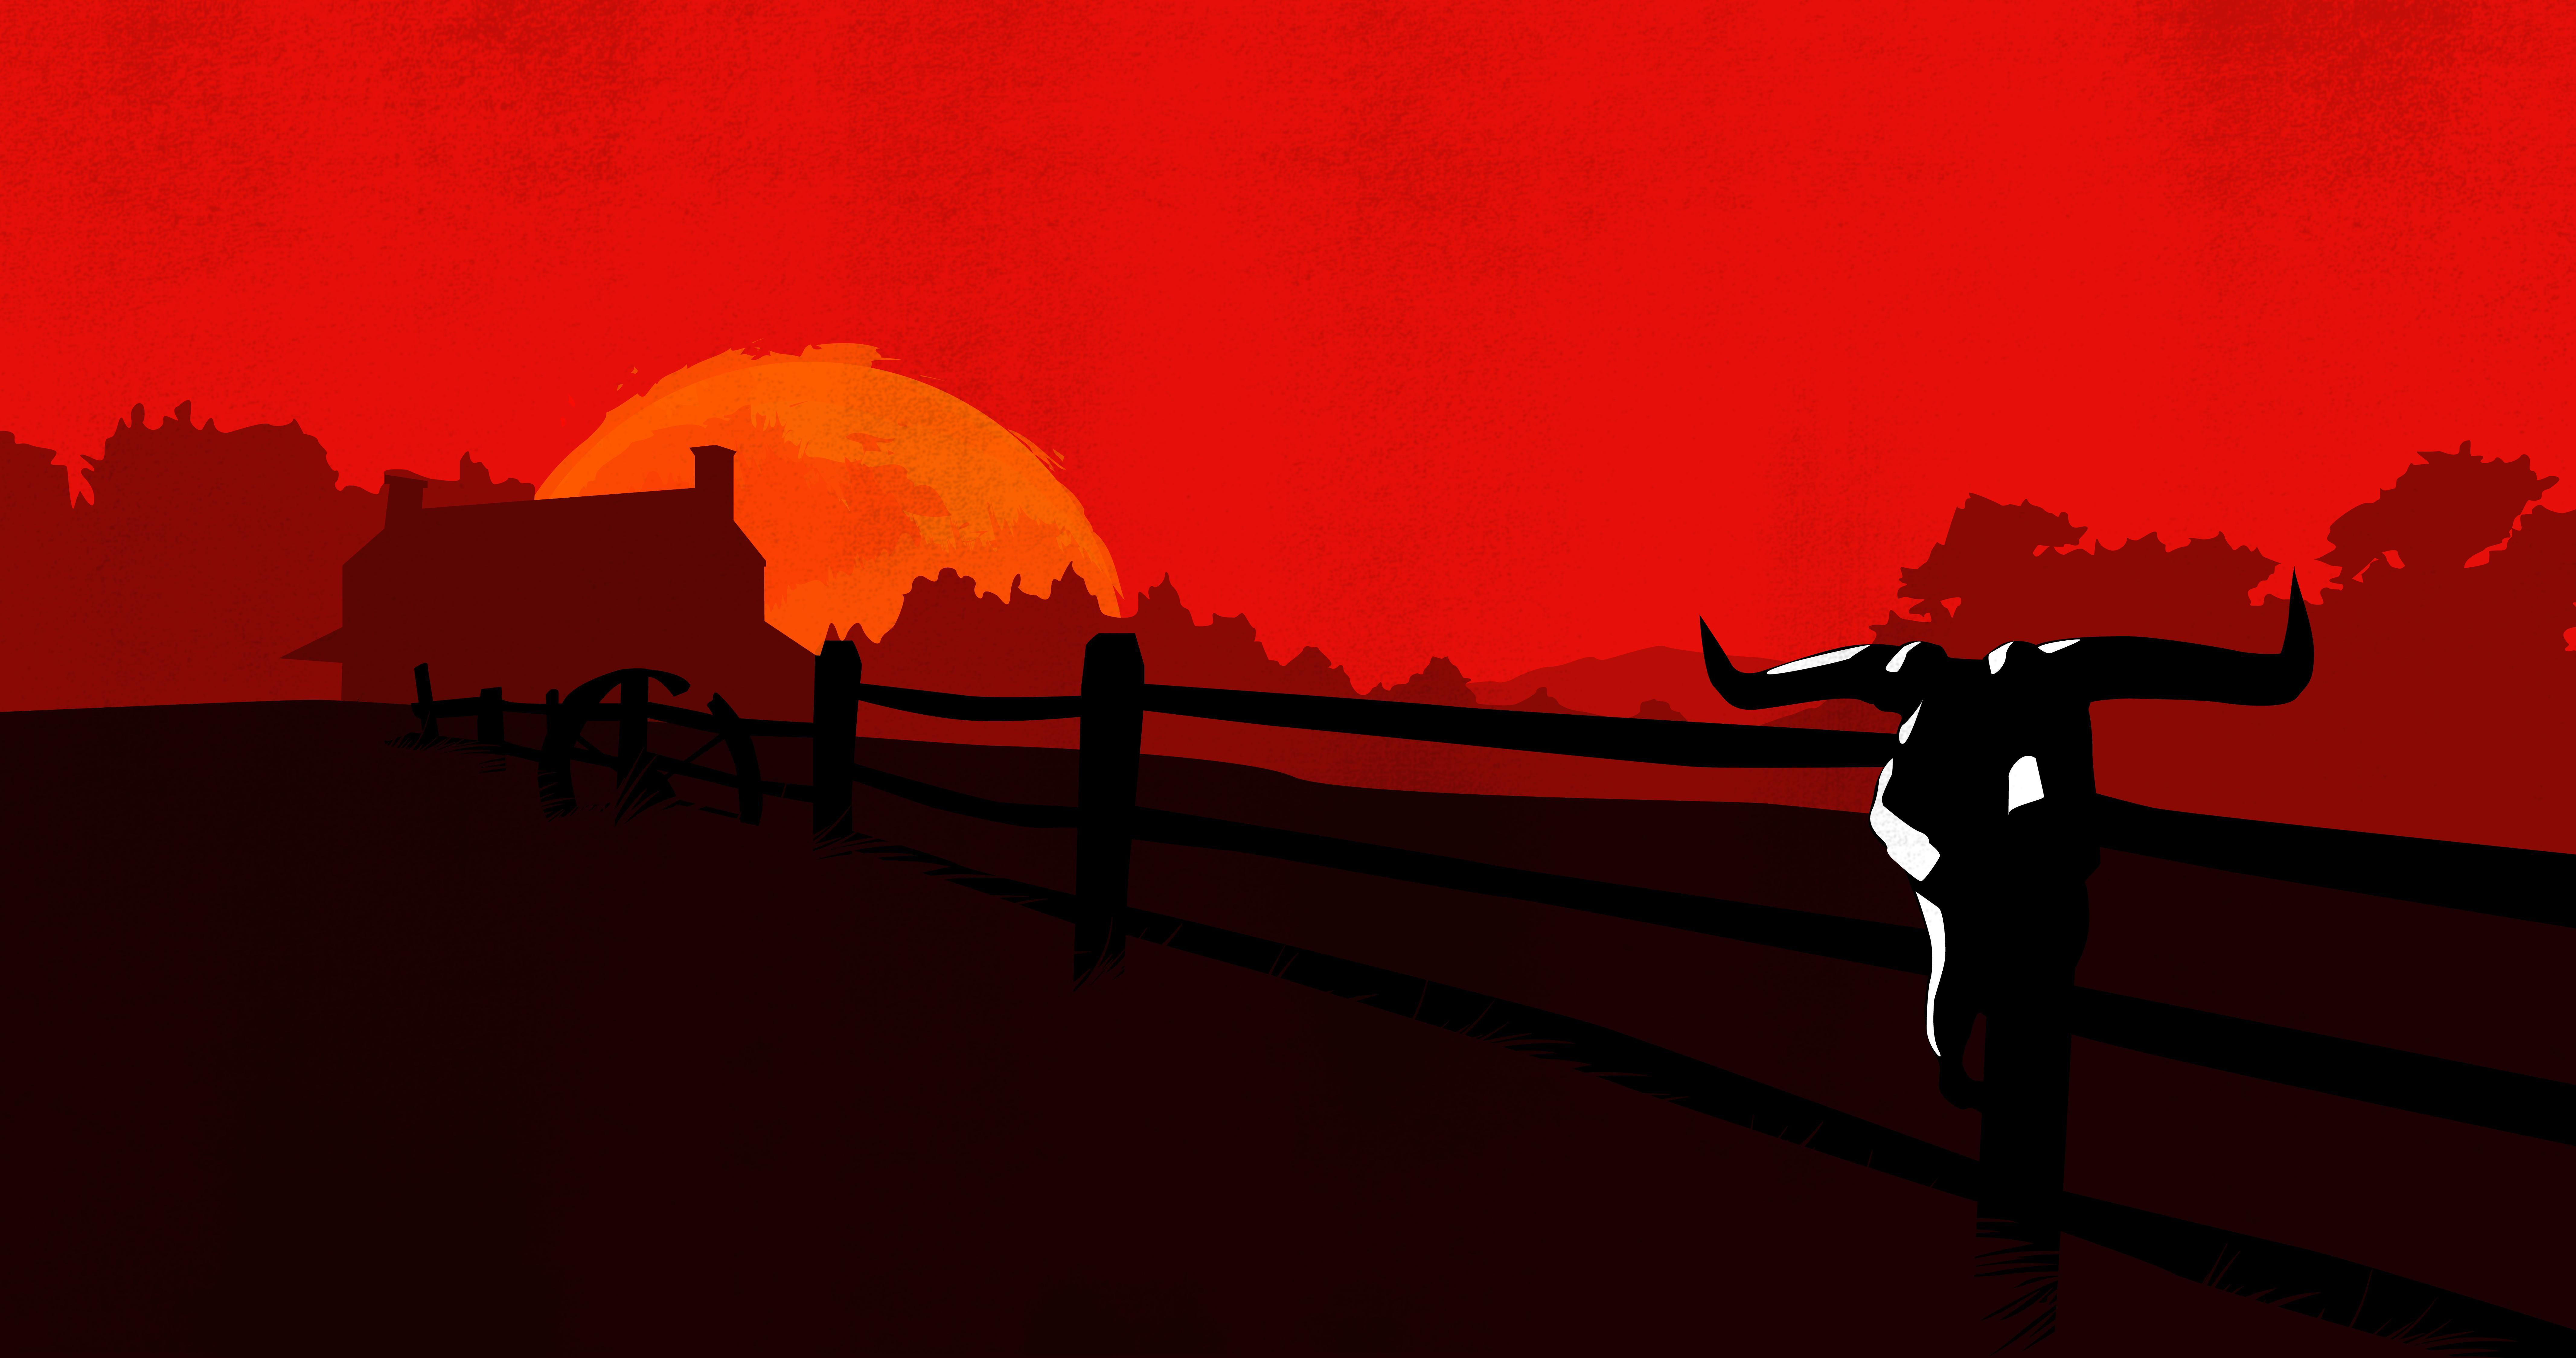 Red Dead Redemption 2 Wallpapers - Wallpaper Cave